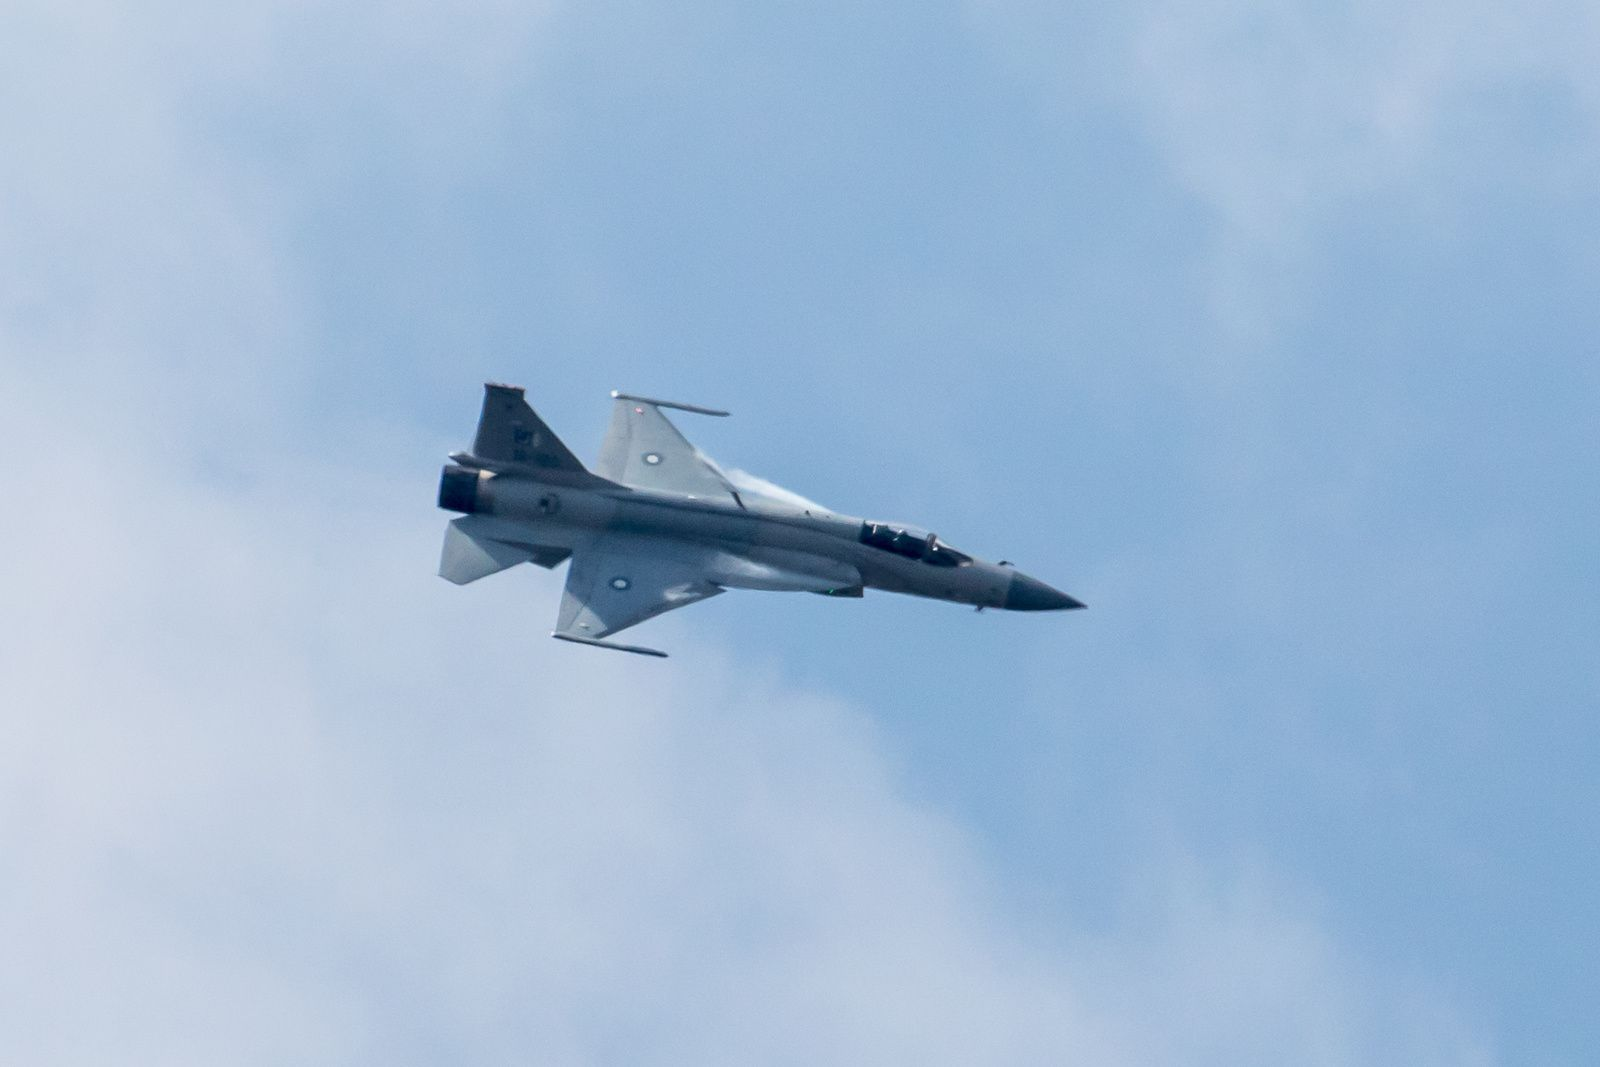 L'avion PAC JF 17 Thunder